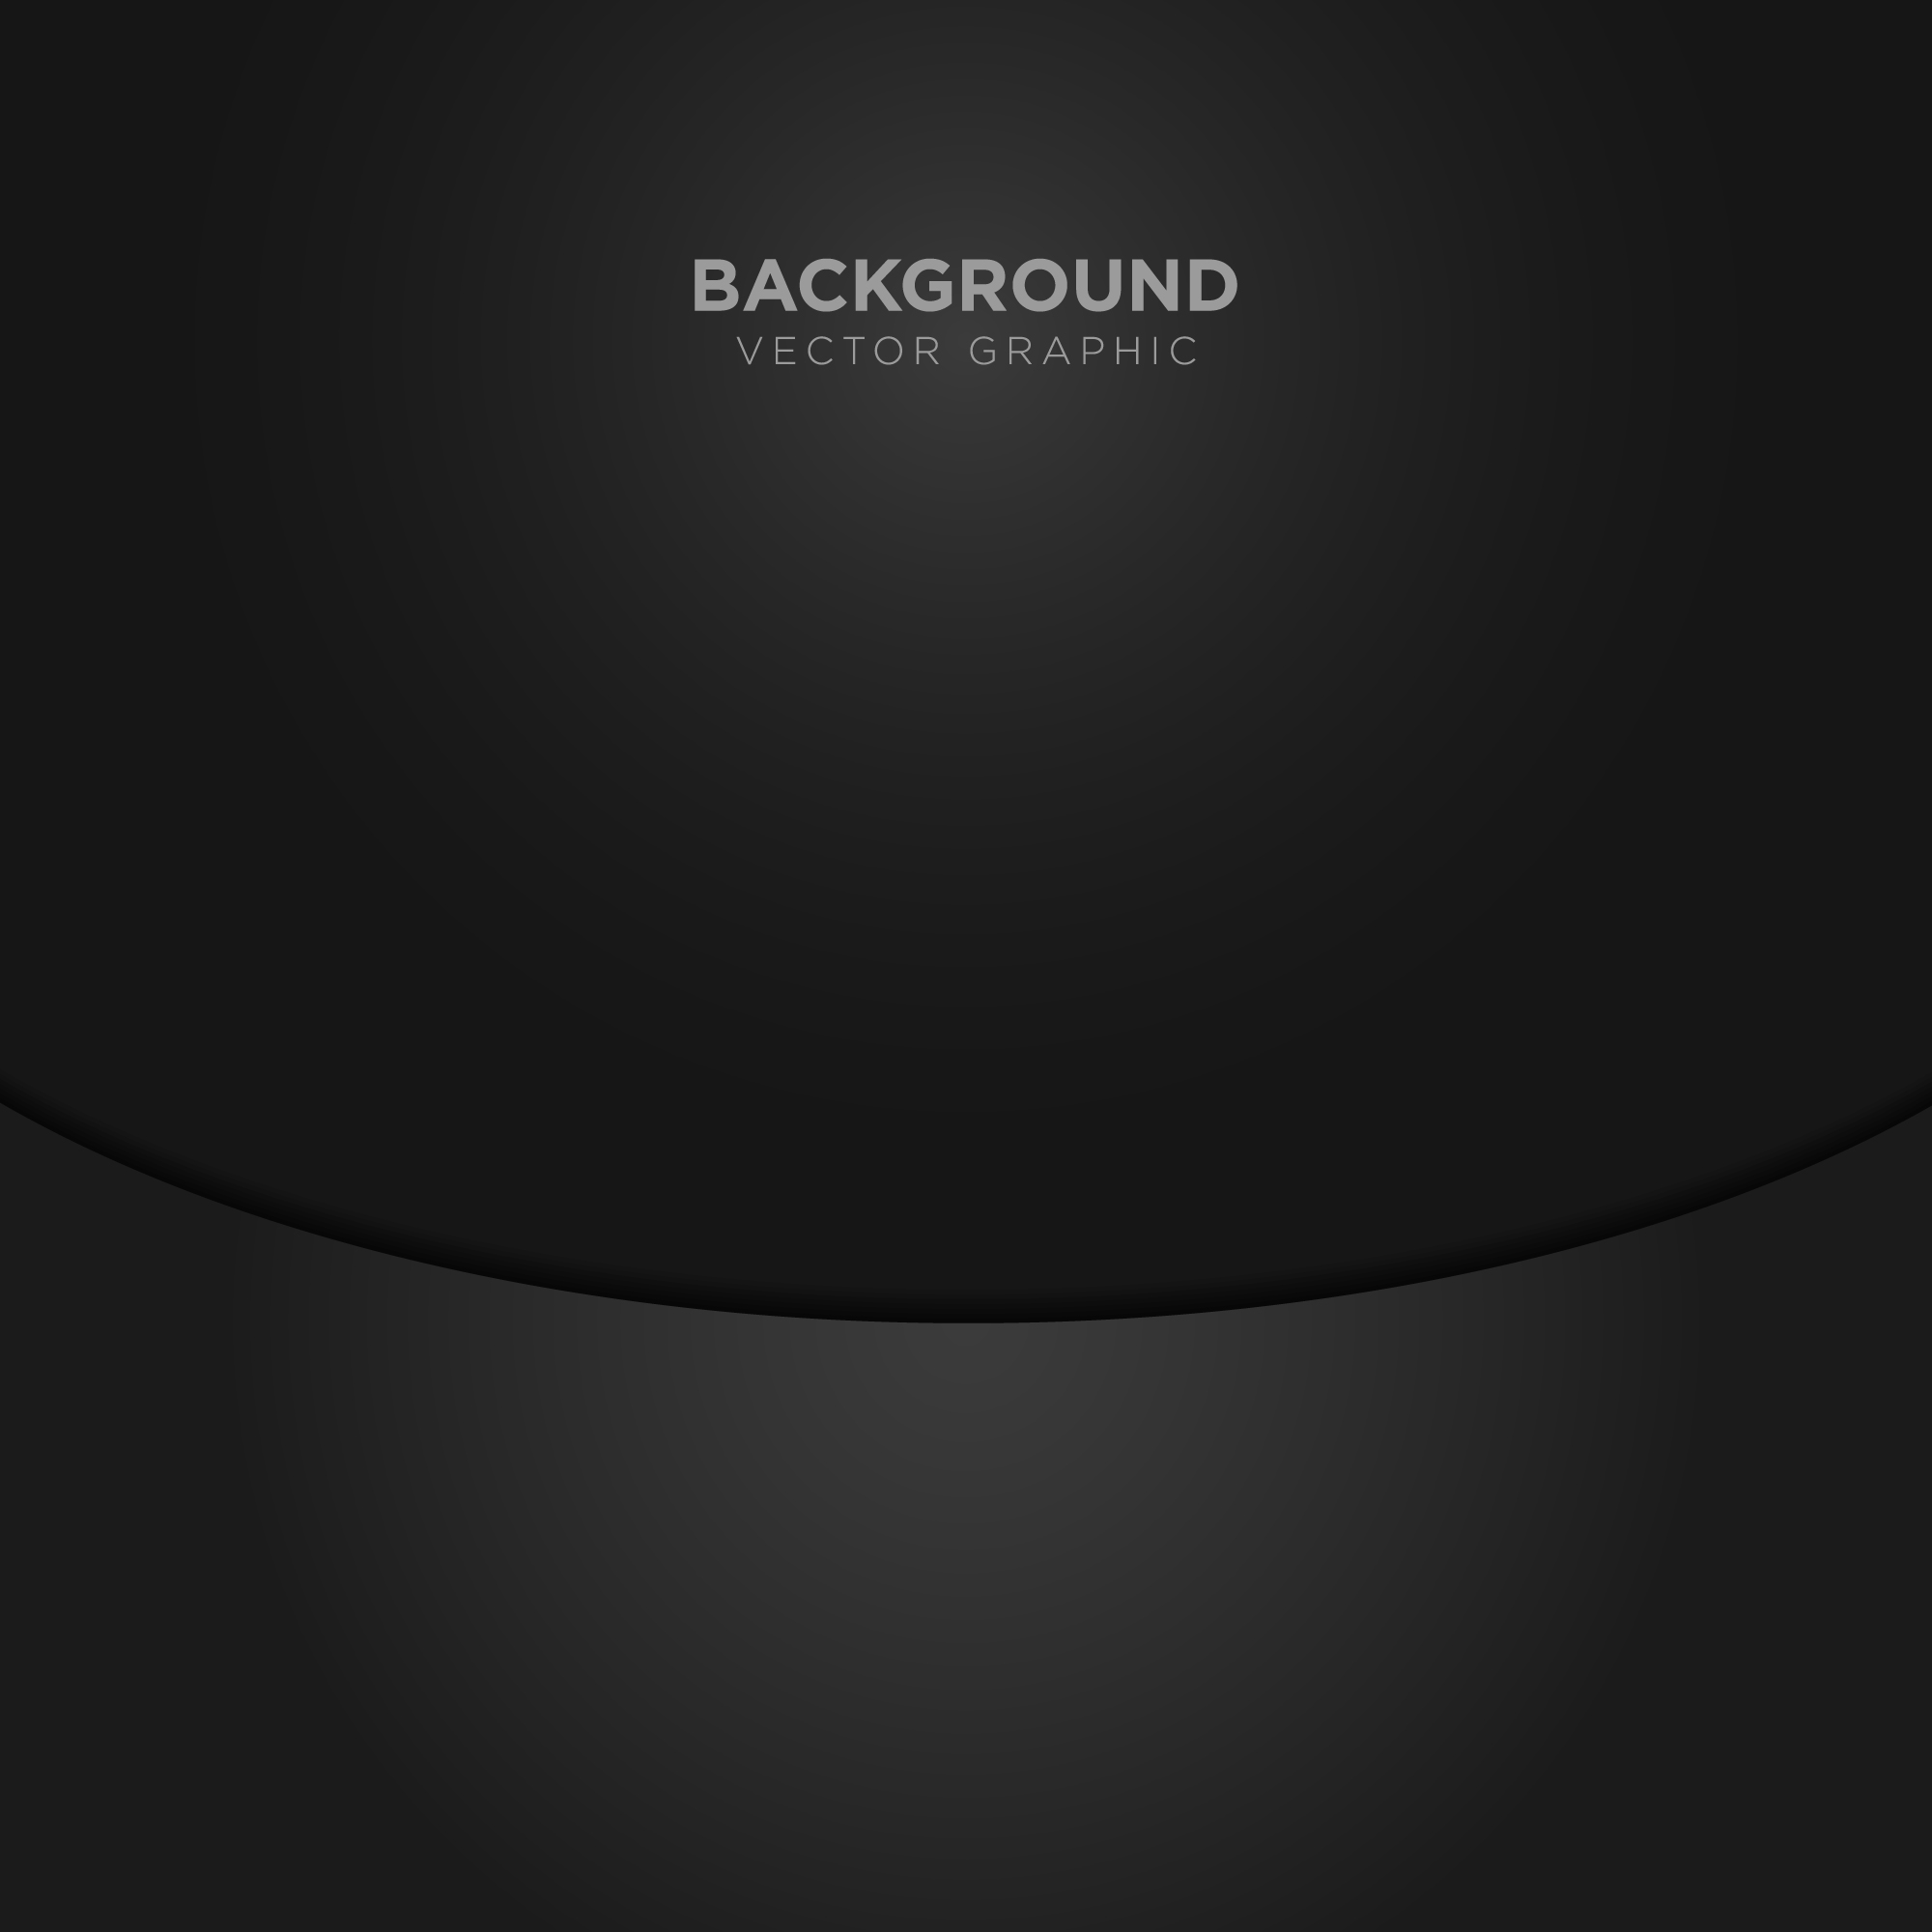 Black background design